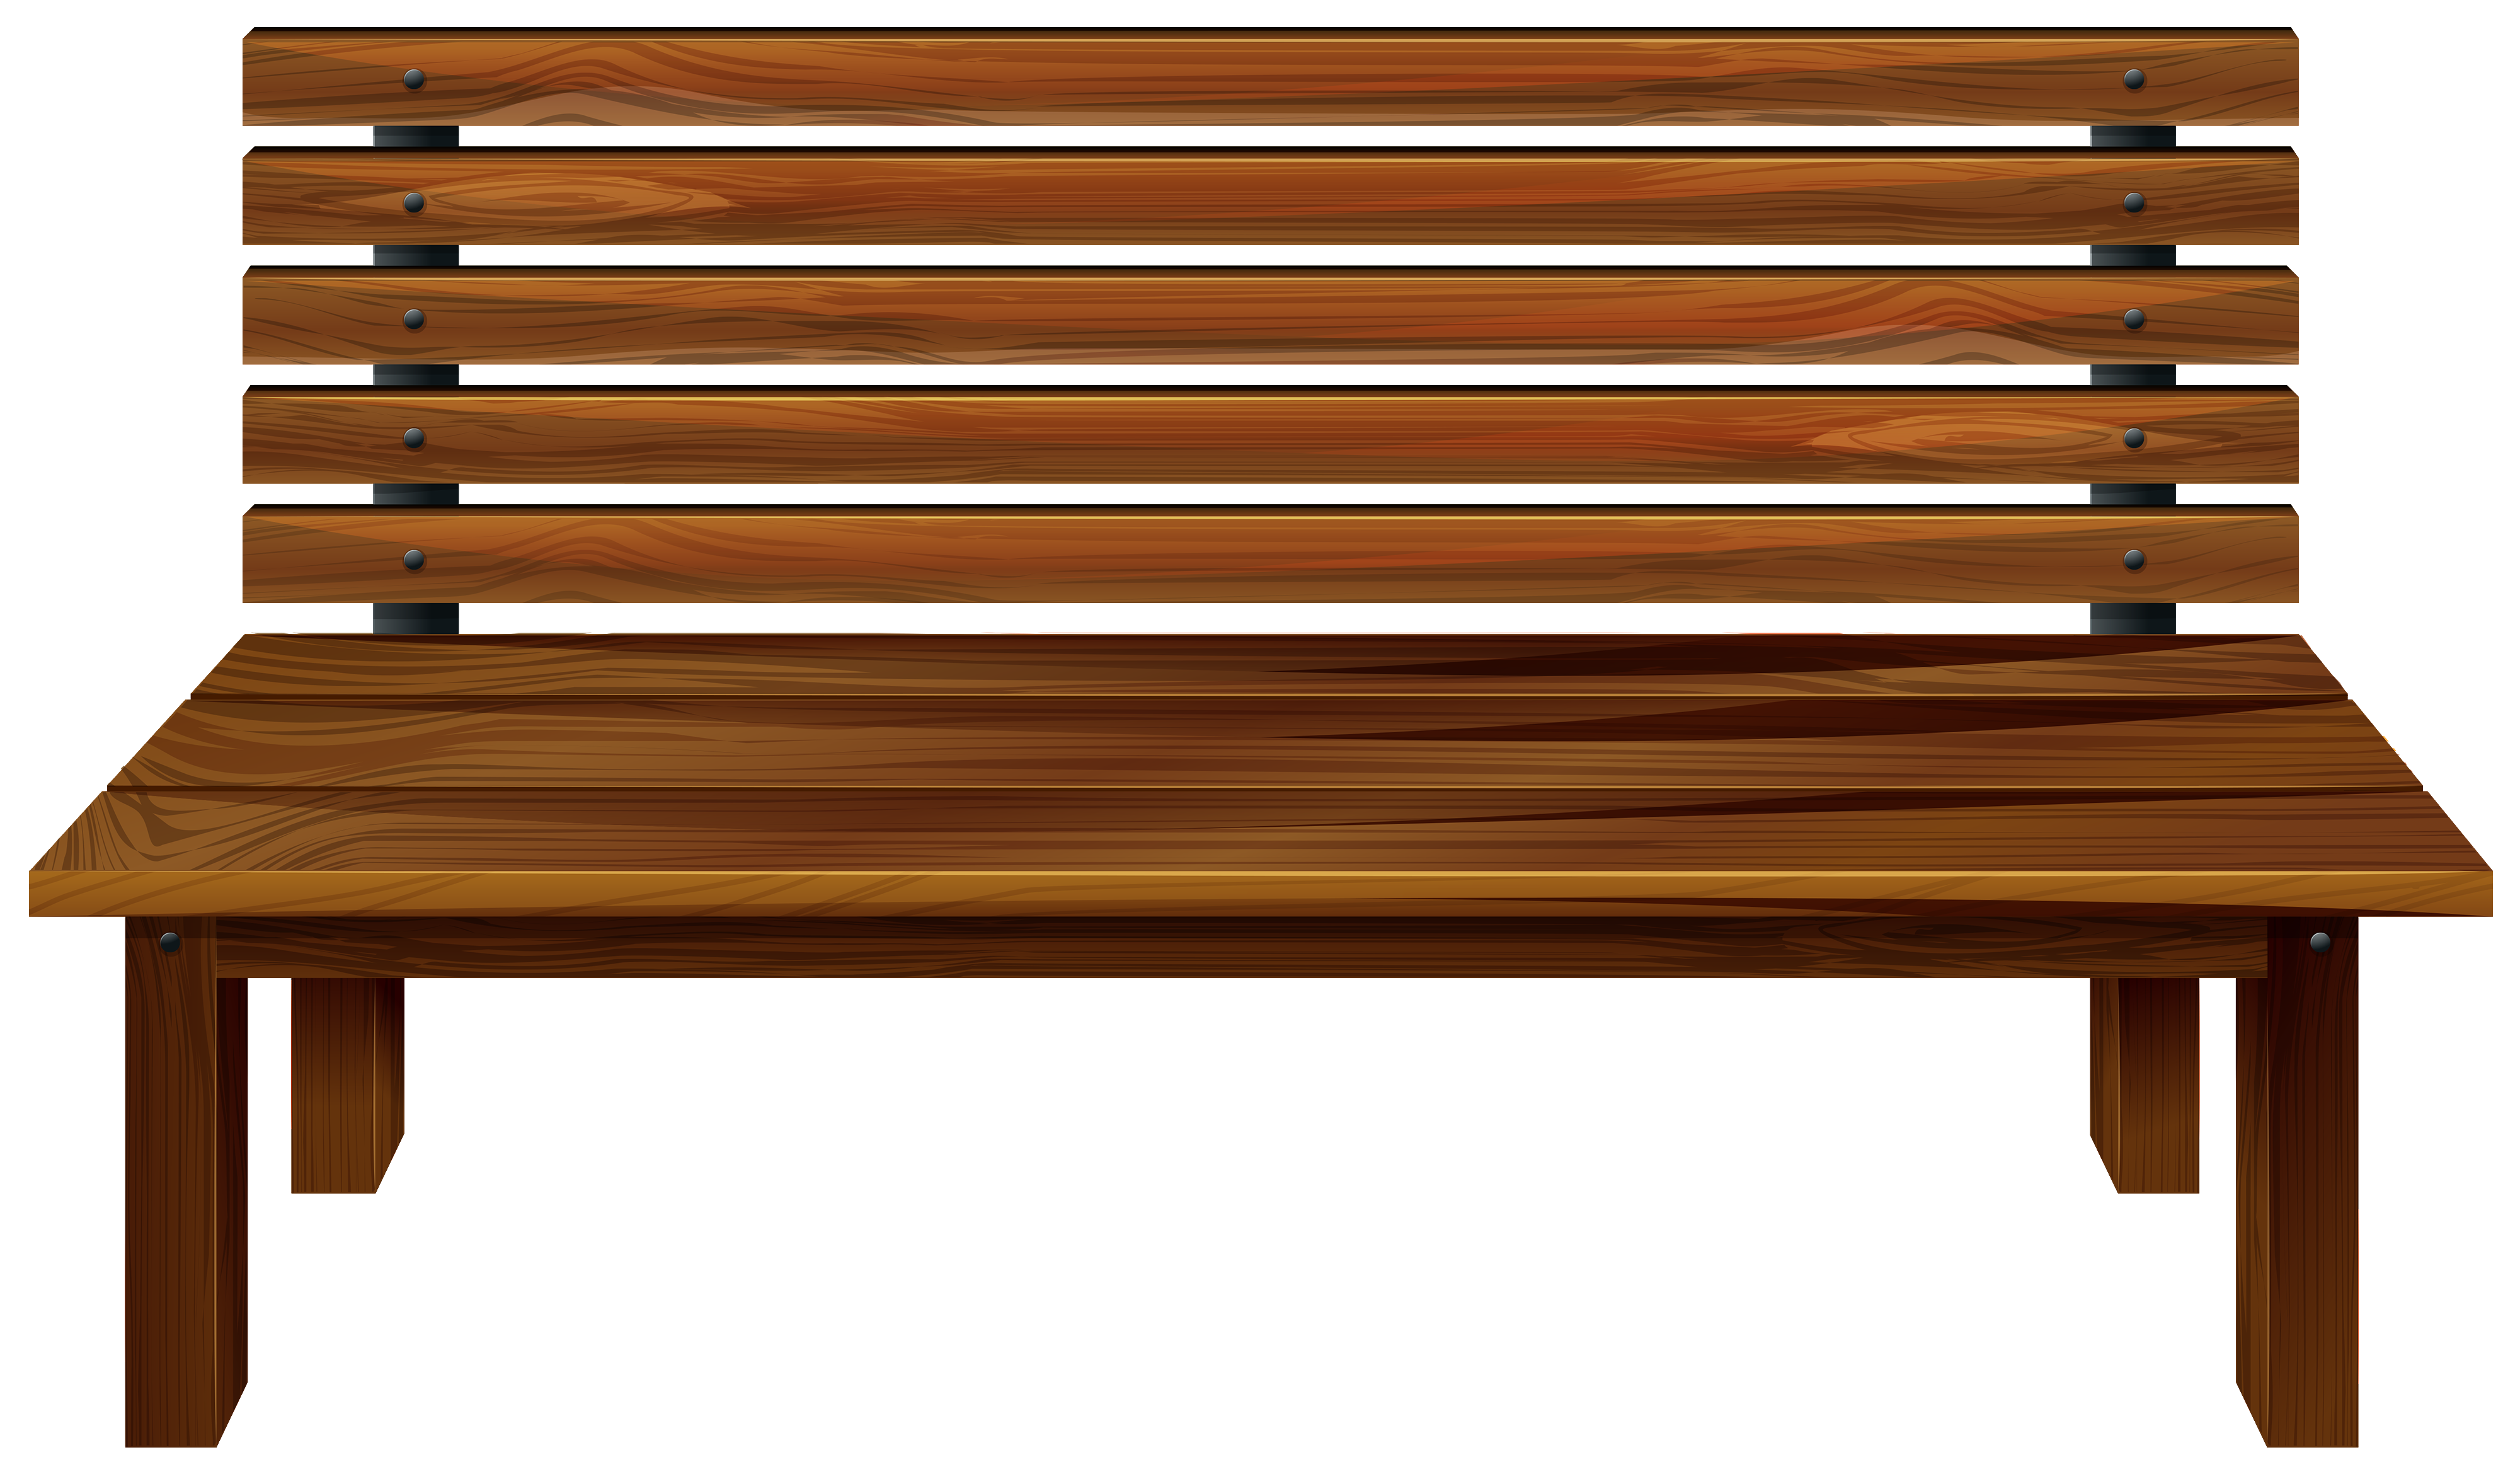 Bench clipart. Wooden png best web